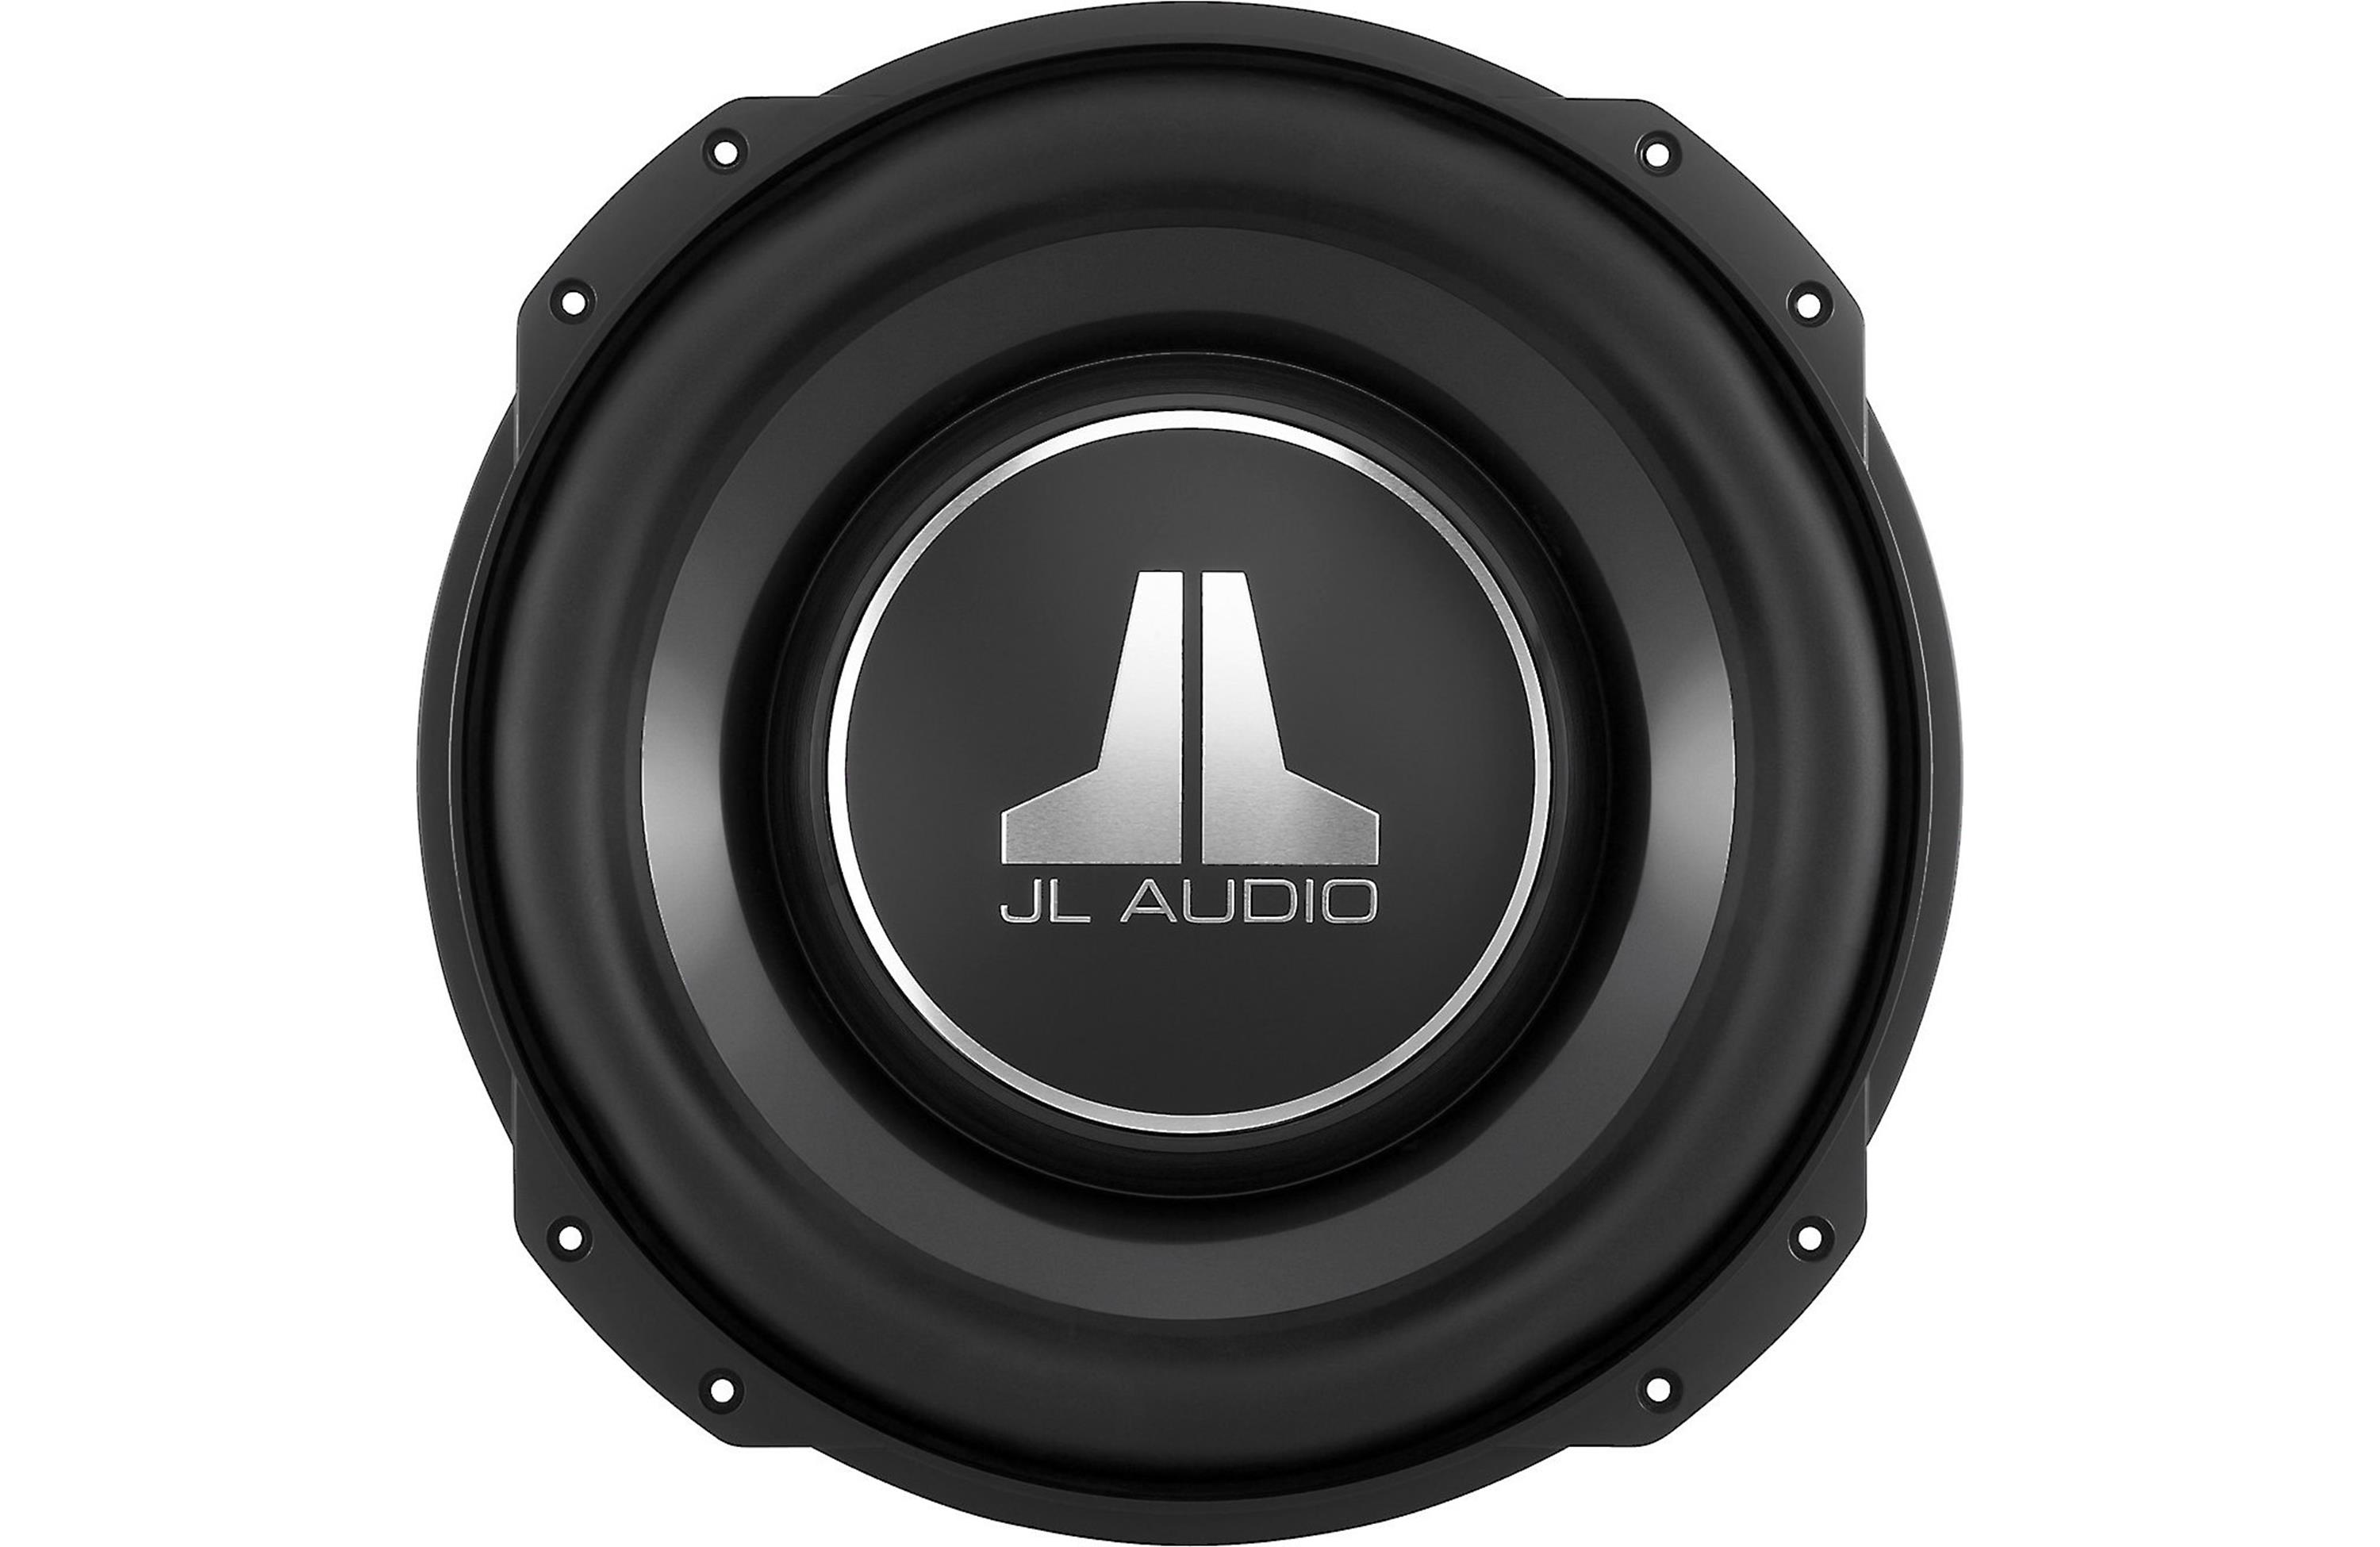 jl audio w6v2 wiring diagram bobcat the animal 10 sub box free download diagrams pictures ipod